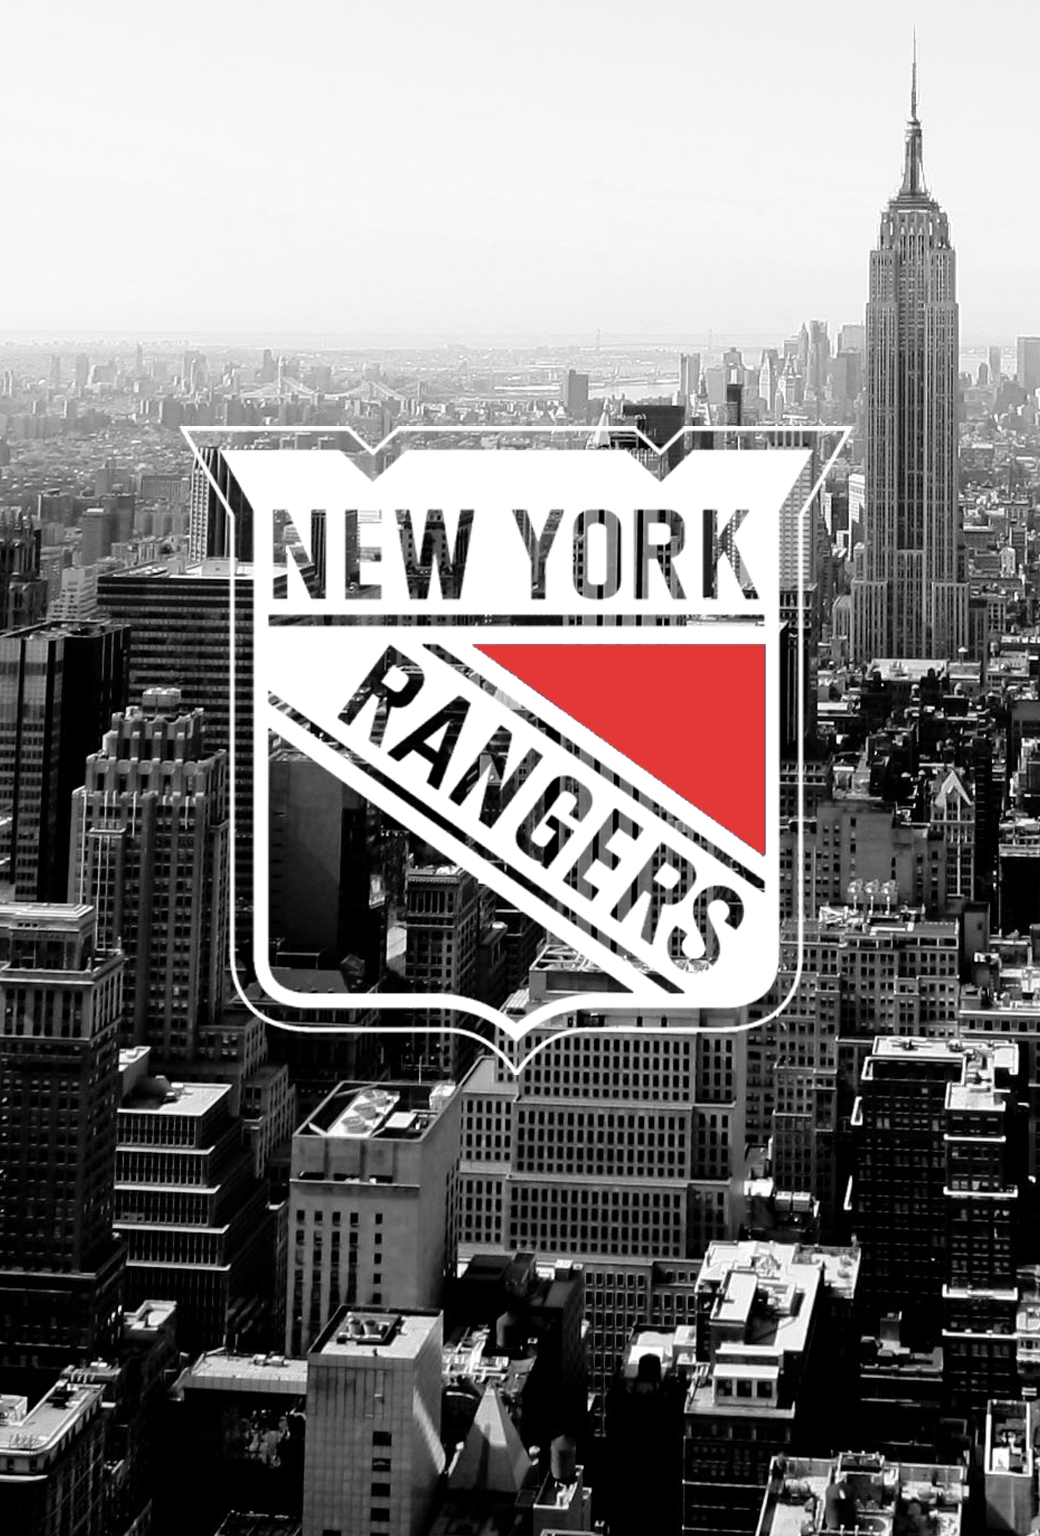 ny rangers wallpaper iphone | hd wallpapers | pinterest | cellphone